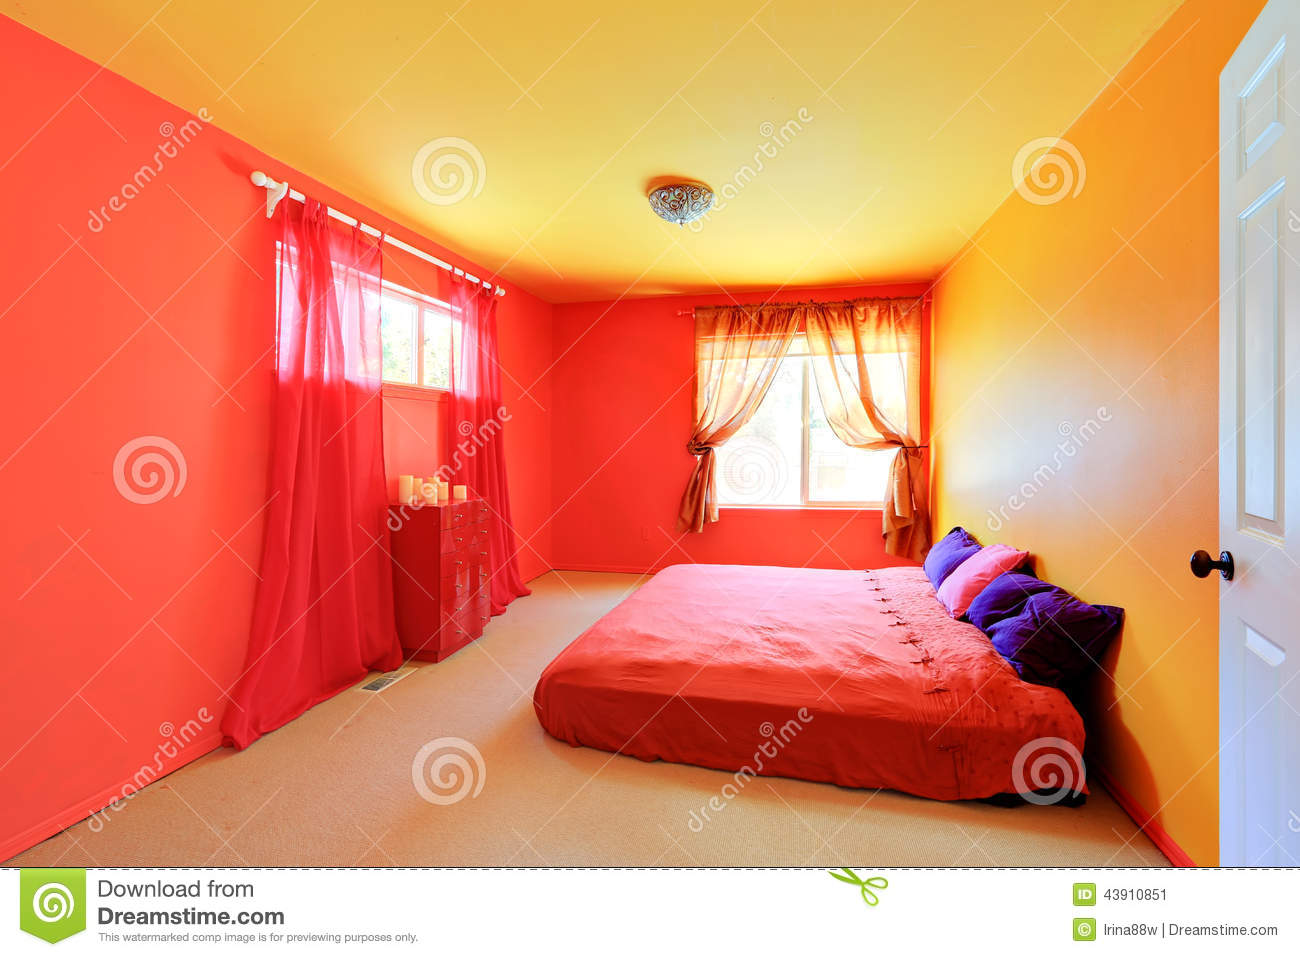 bright neon colors for bedrooms submited images